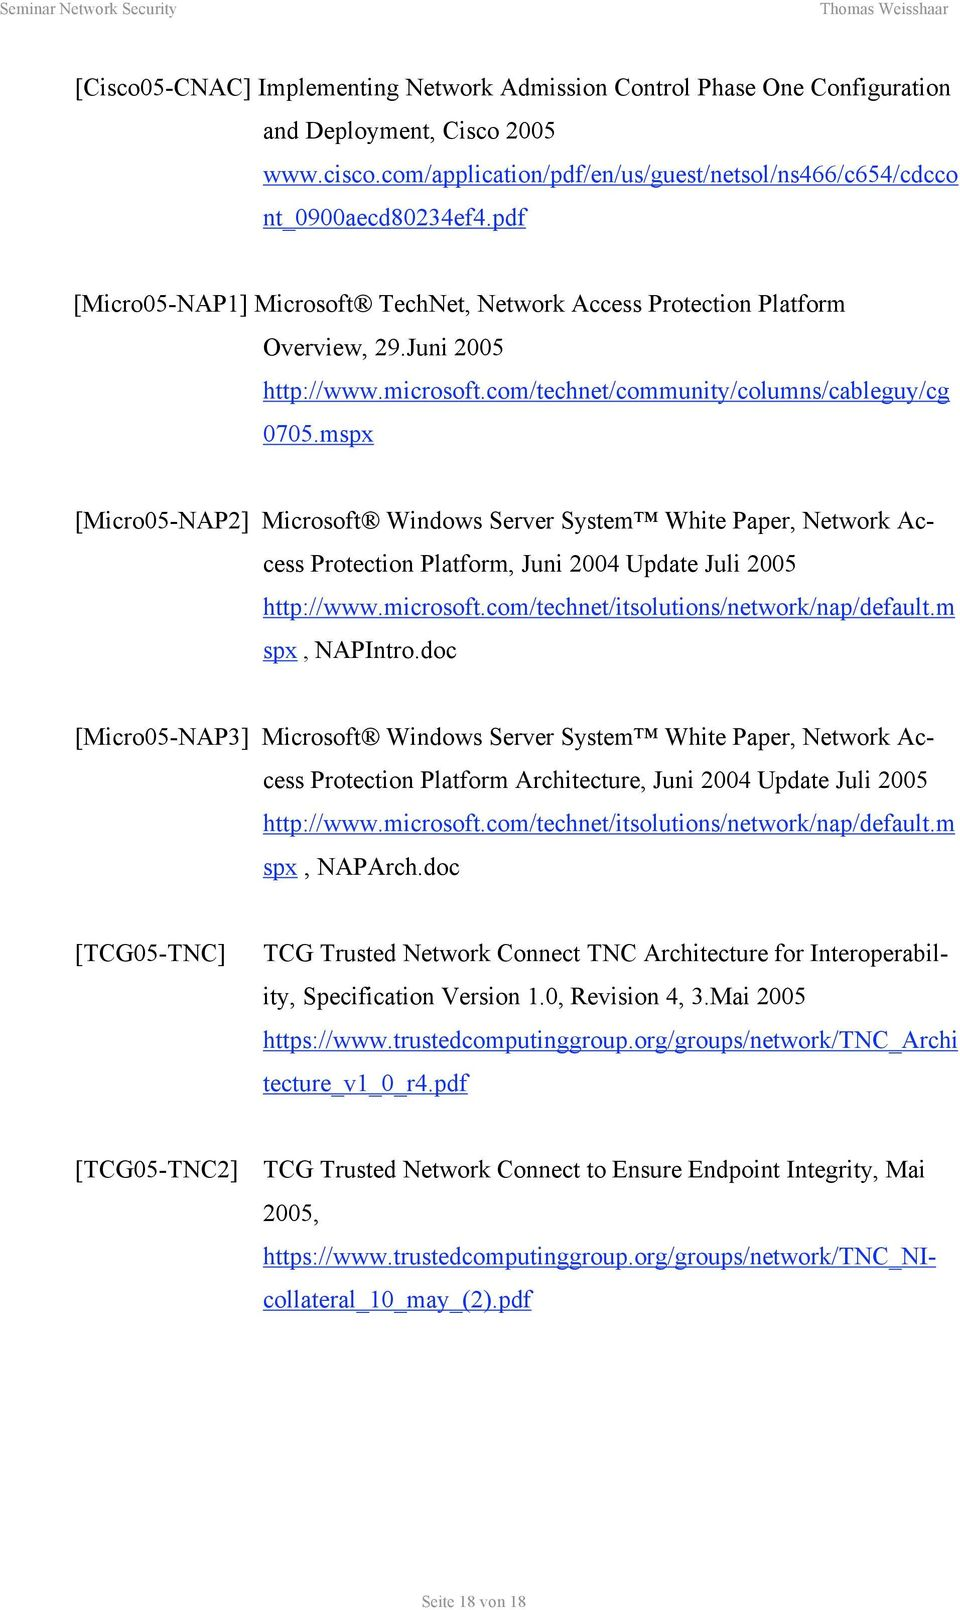 mspx [Micro05-NAP2] Microsoft Windows Server System White Paper, Network Access Protection Platform, Juni 2004 Update Juli 2005 http://www.microsoft.com/technet/itsolutions/network/nap/default.